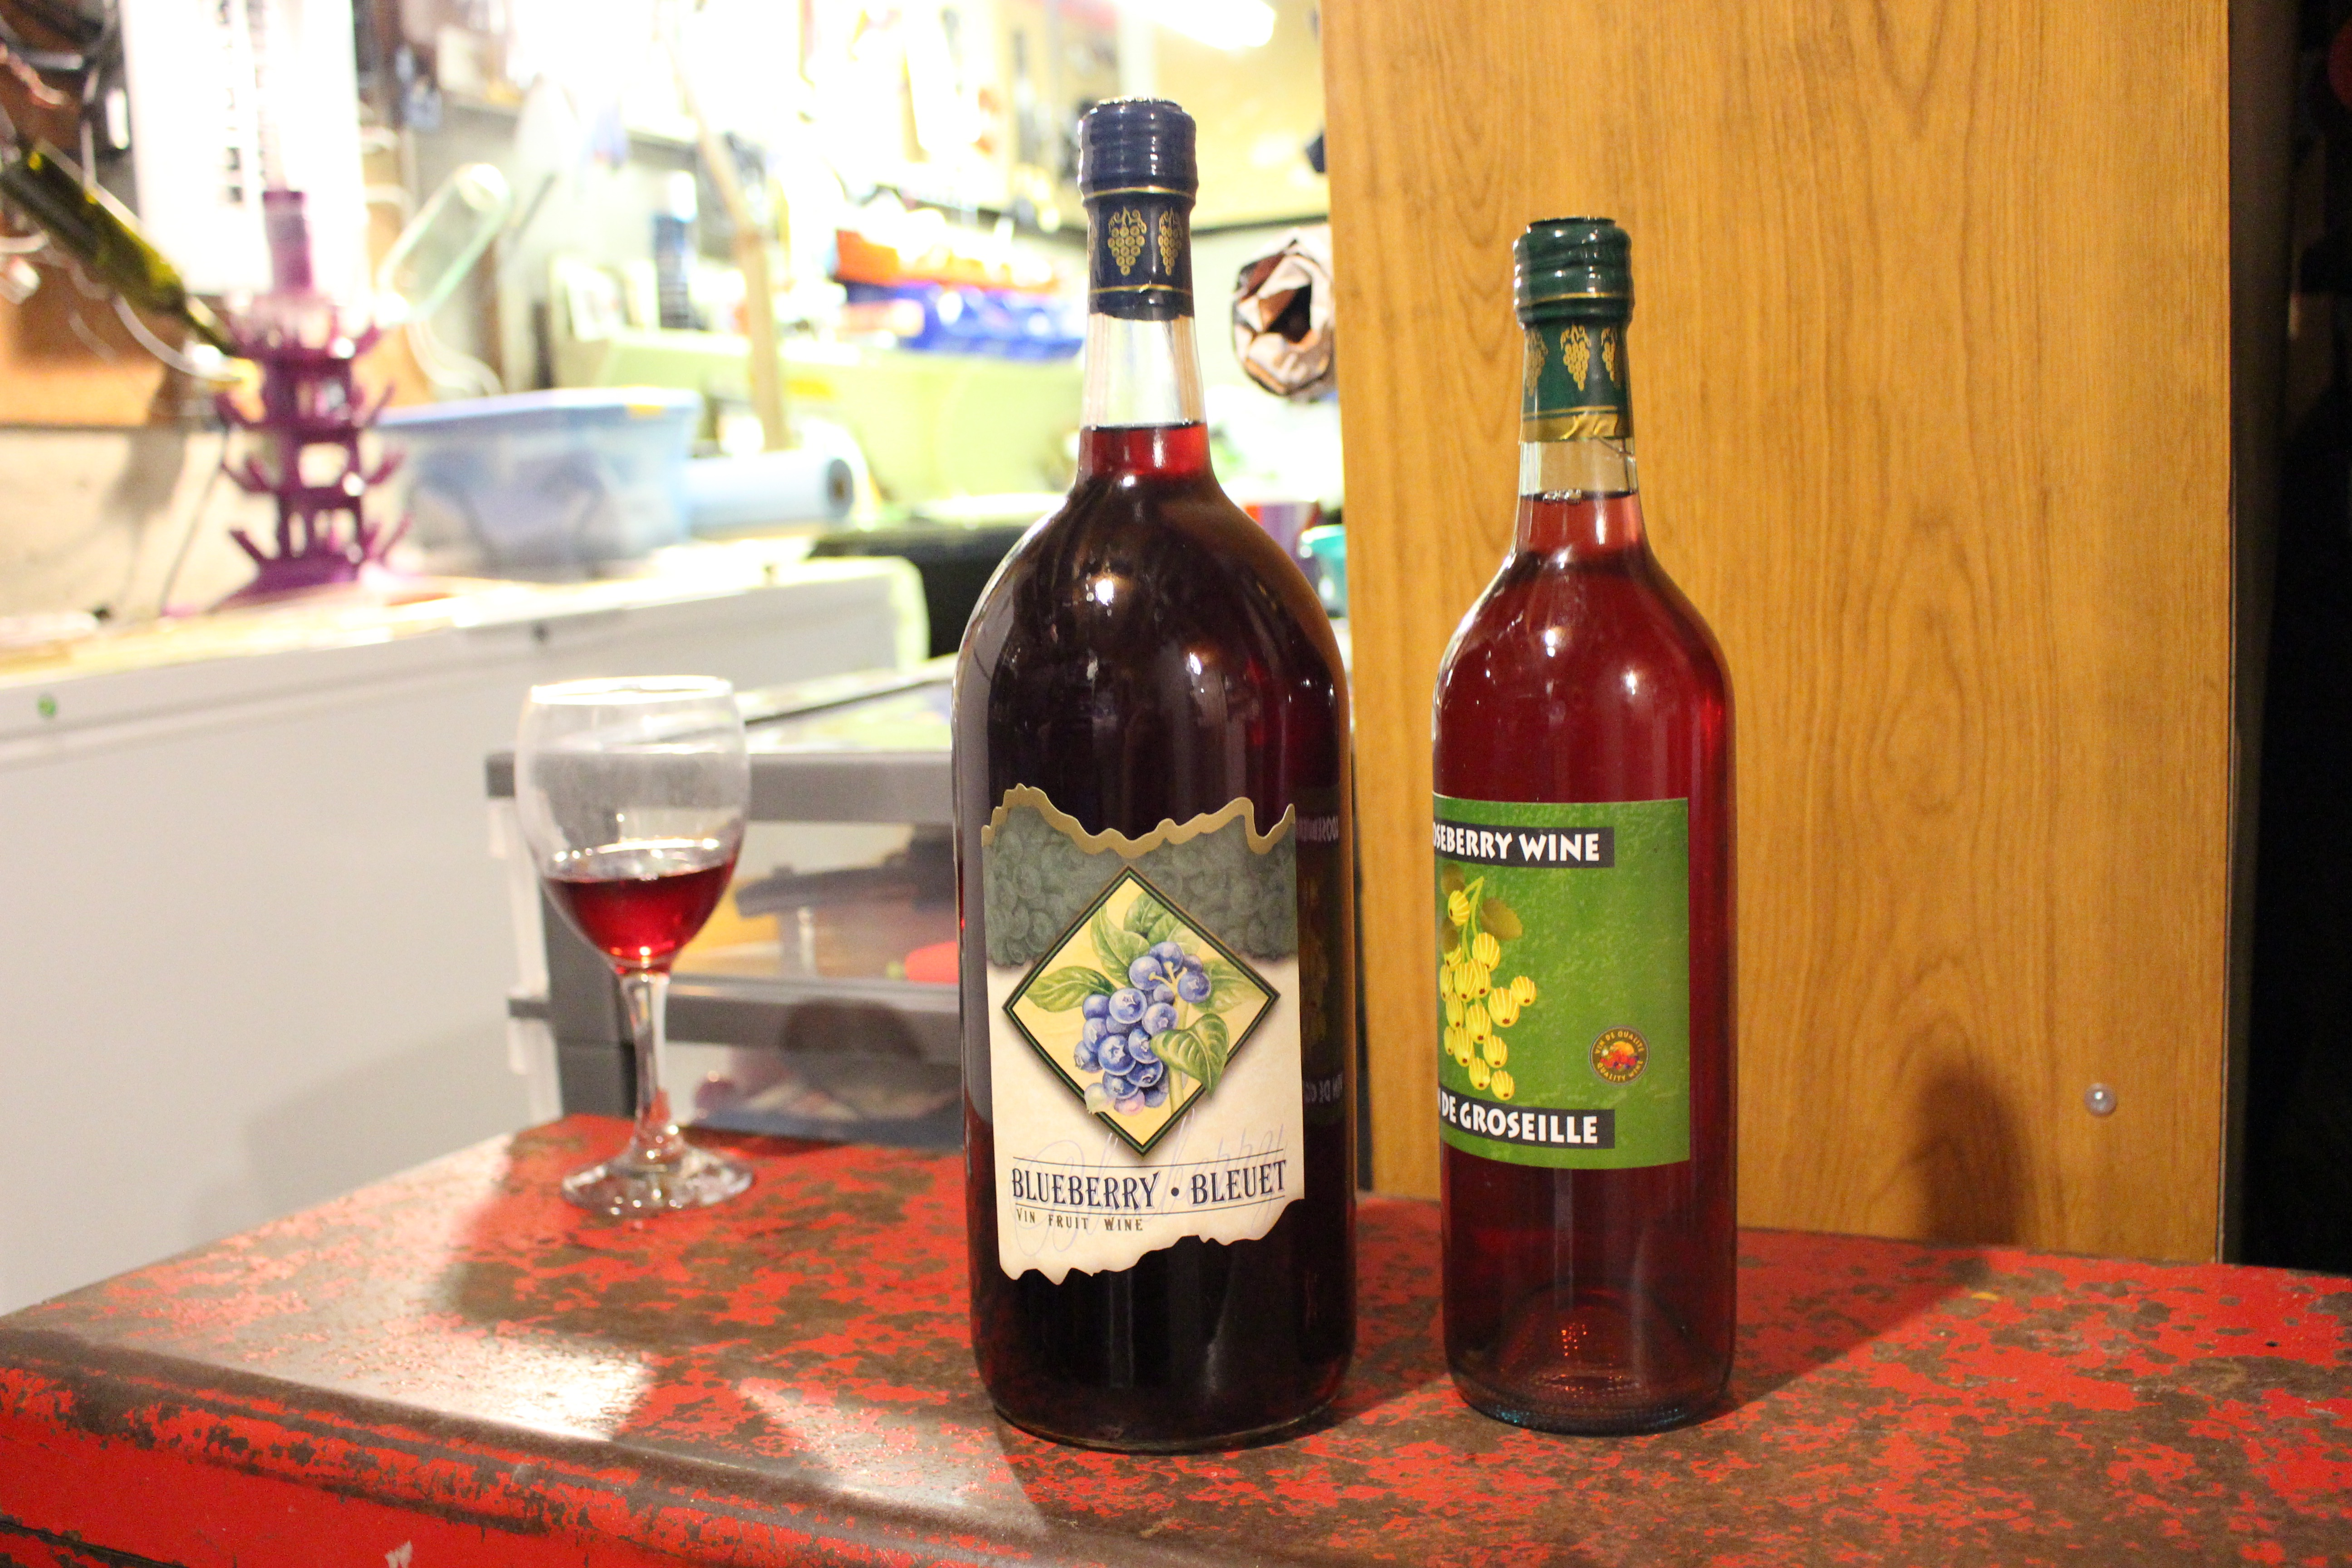 One small-medium wineglass of gooseberry wine, a bottle of blueberry wine, and a bottle of gooseberry wine—all made by Herbert Greening and displayed along a horizontal surface in his basement wine-making area. The bottle labels feature both English and French and illustrations of a bunch of blueberries with leaves on one, and a sprig of yellow-green gooseberries on the other. Mount Pearl, Newfoundland, 9 November 2017. Photo: Ema Noëlla Kibirkstis.